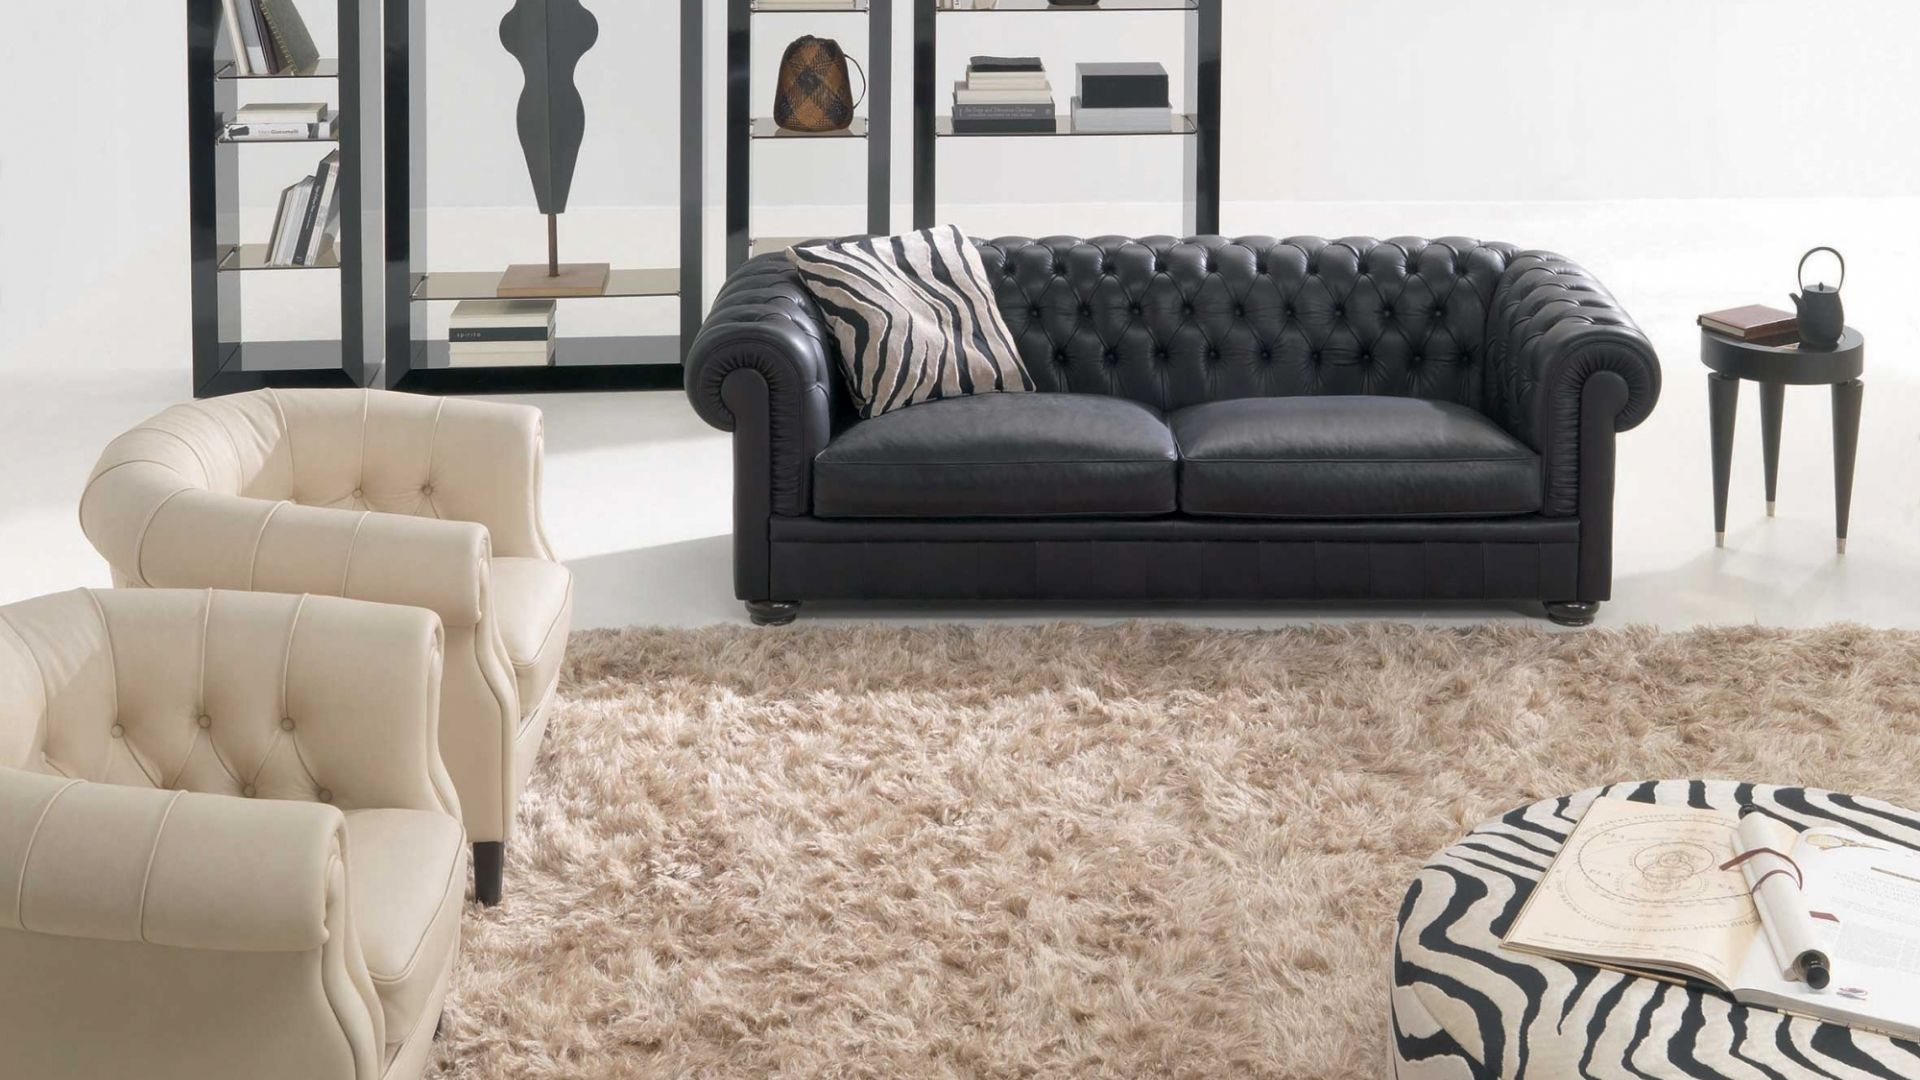 Chesterfield sofa leather 2 seater black KING NATUZZI